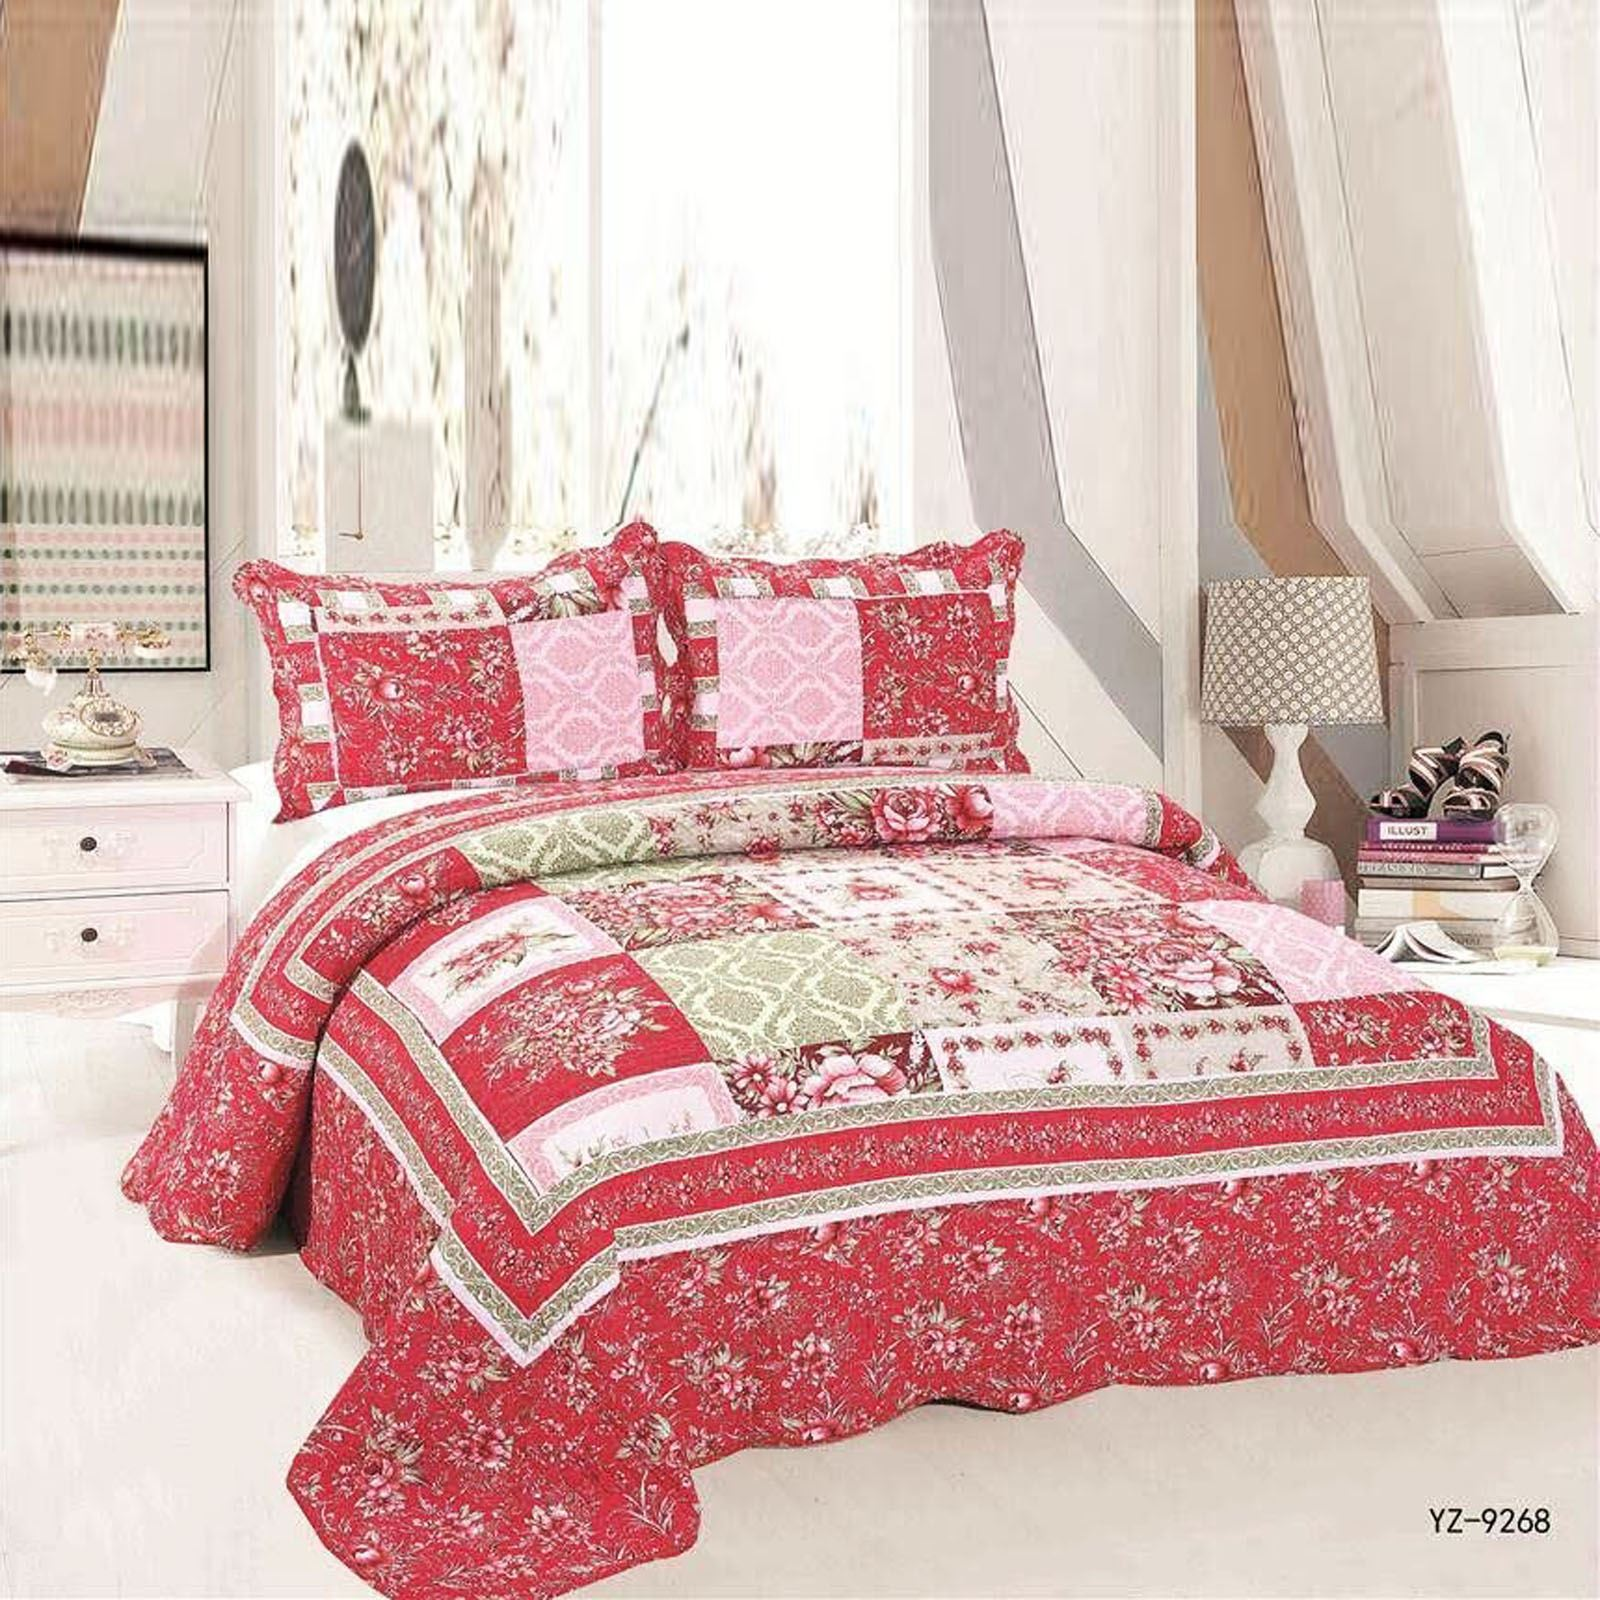 new luxury bedspread pillow cover throw jacquard quilted patchwork set honeycomb ebay. Black Bedroom Furniture Sets. Home Design Ideas